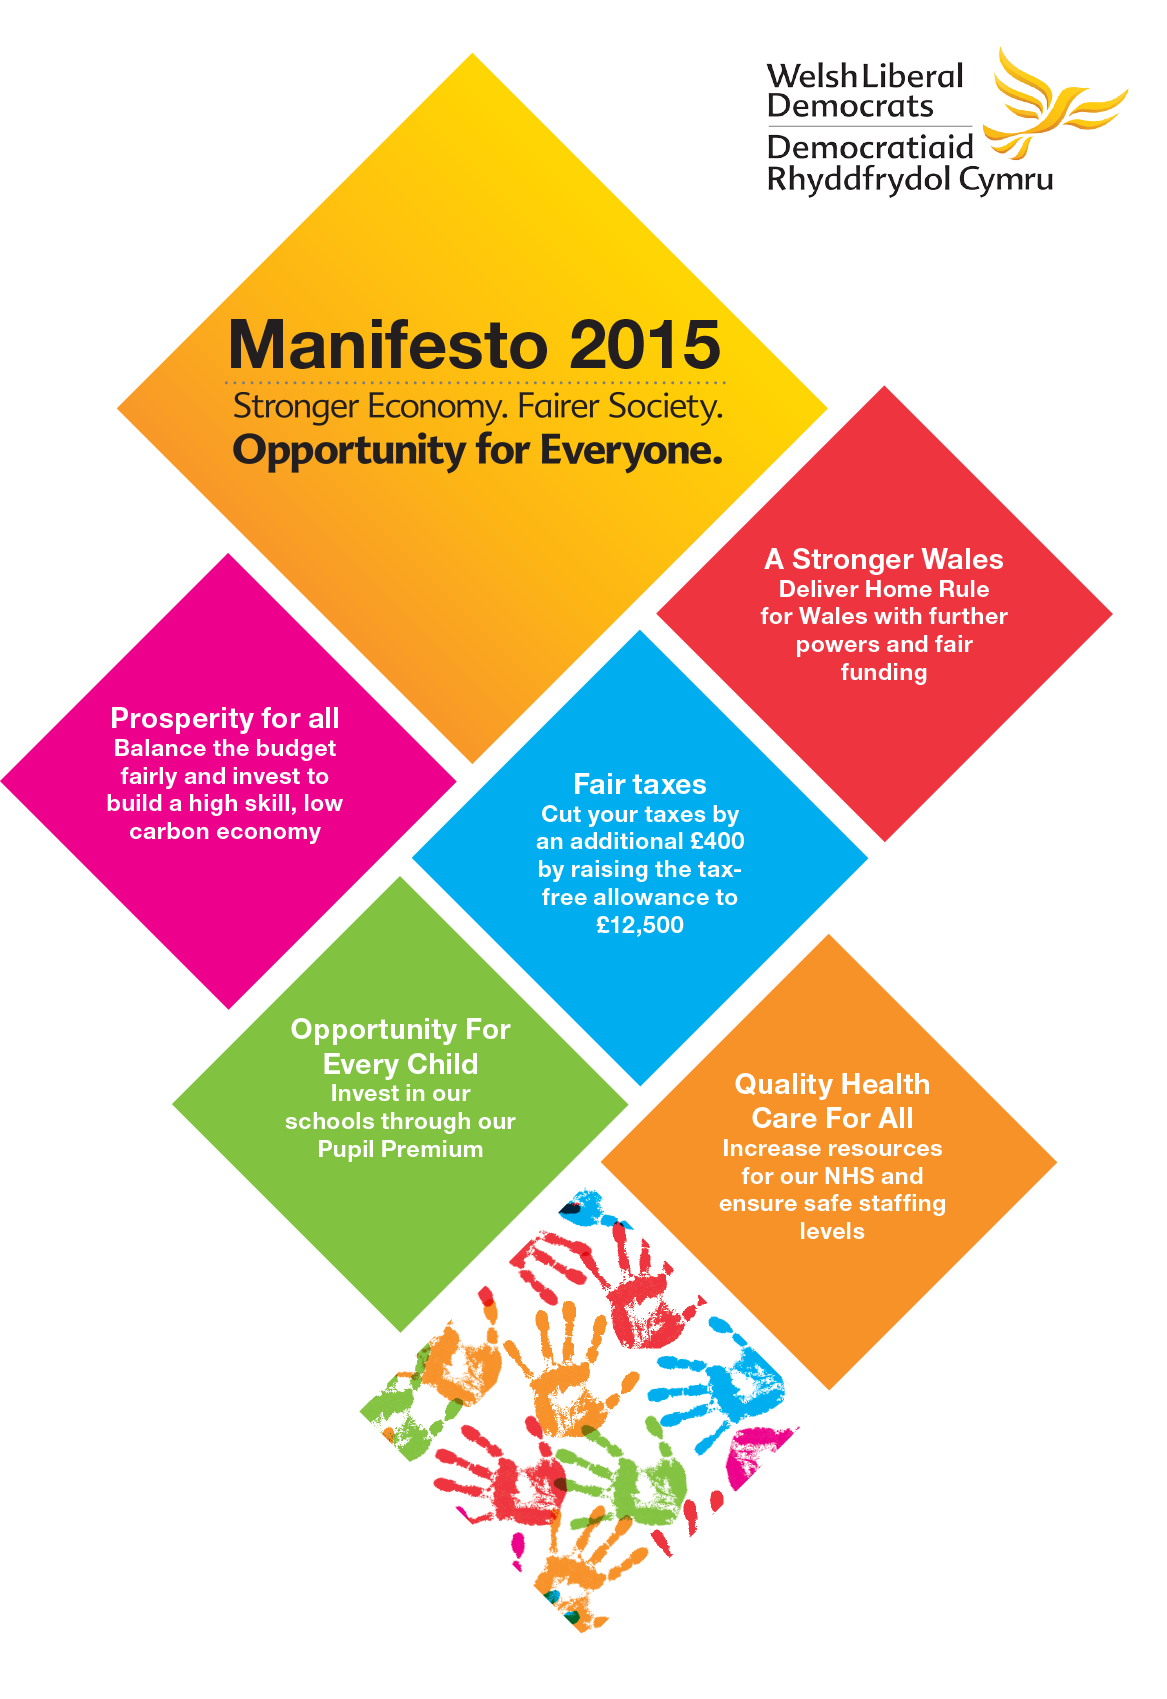 Welsh_Manifesto_Covers_2015_Hi_Resv5-1.png